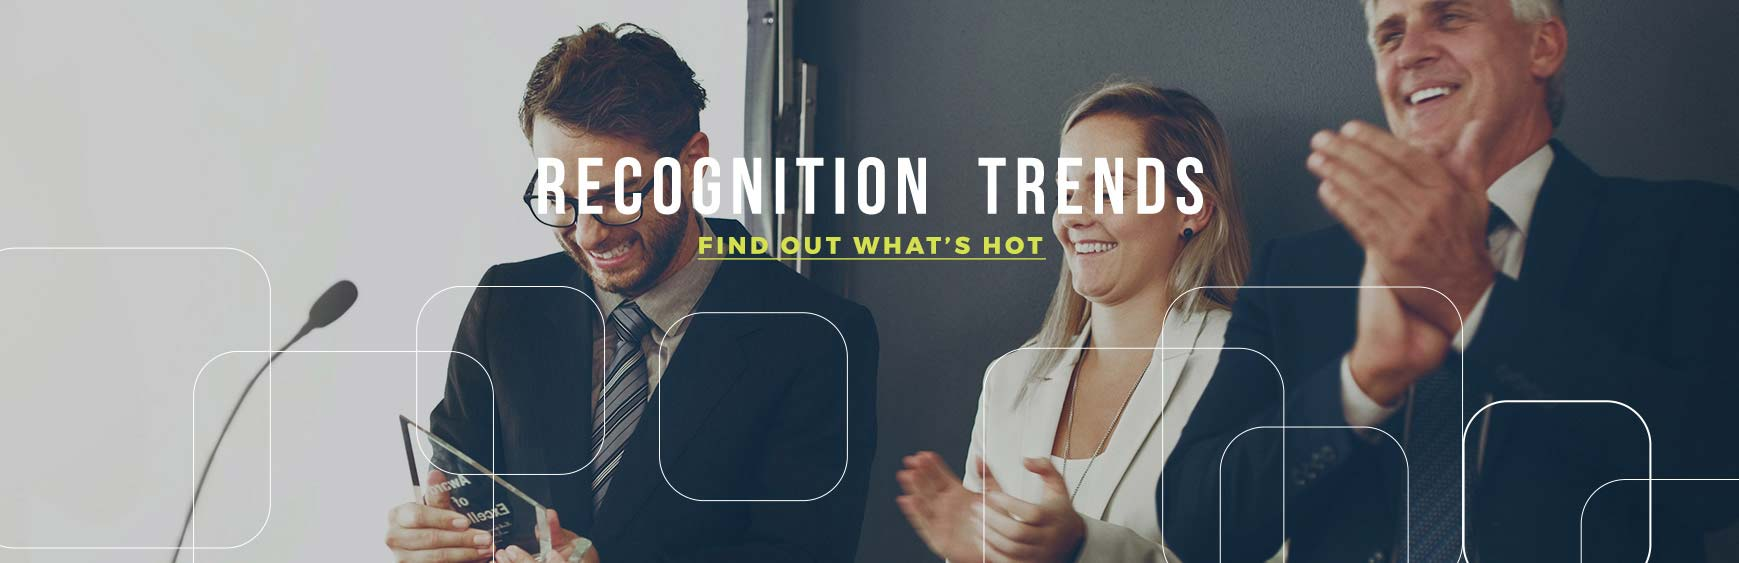 Recognition Trends